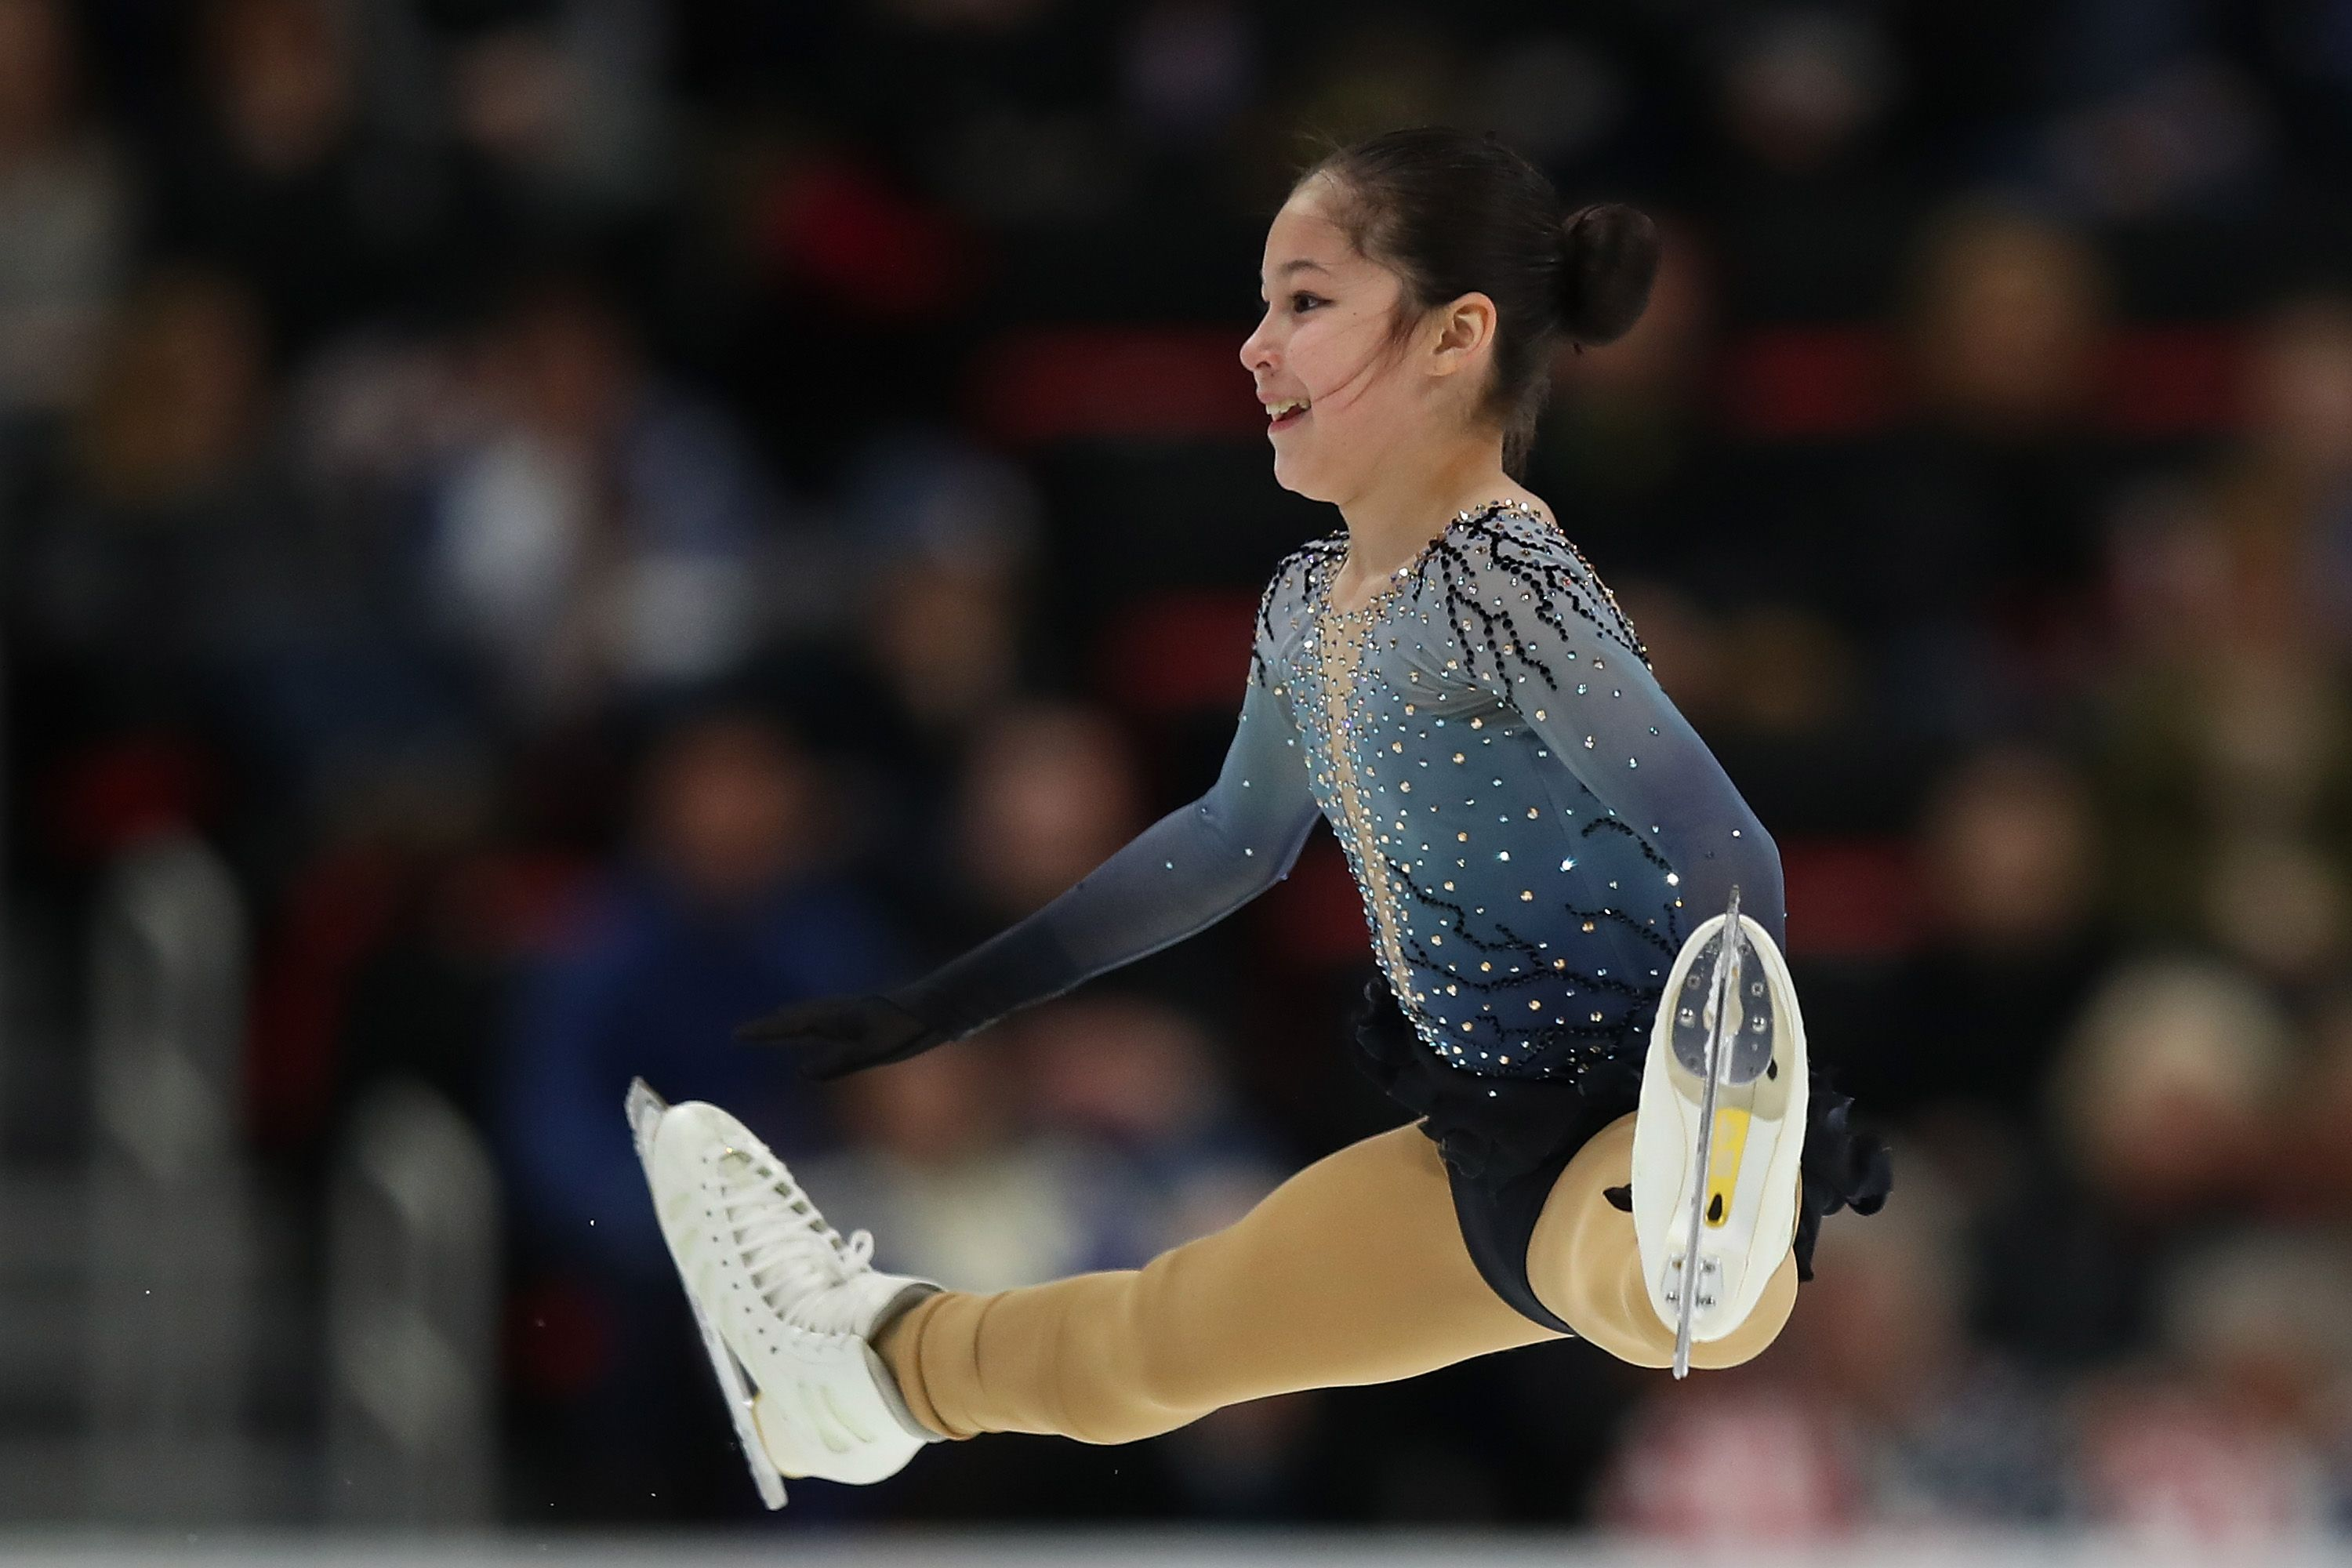 2019 U.S. Figure Skating Championships - Day 4